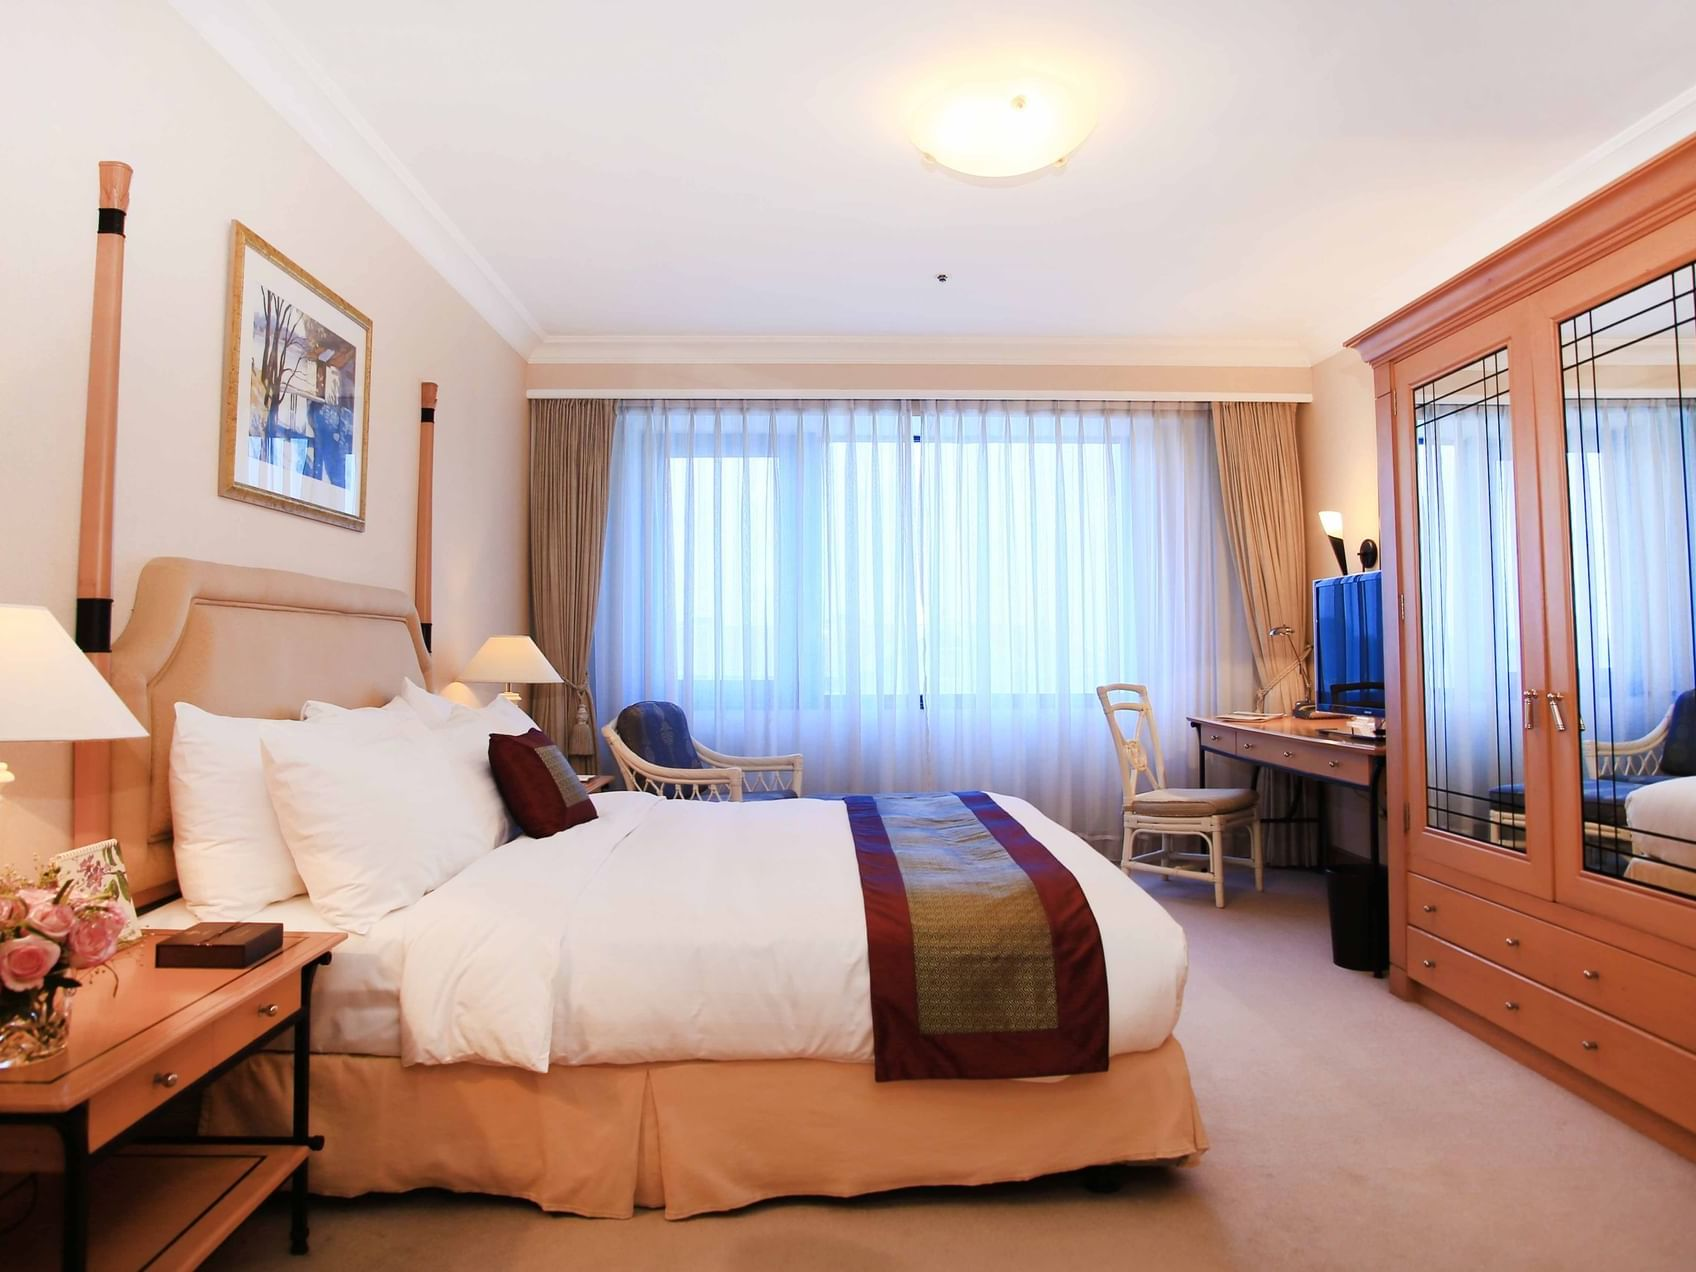 Deluxe Suite with one bed at Hanoi Daewoo Hotel